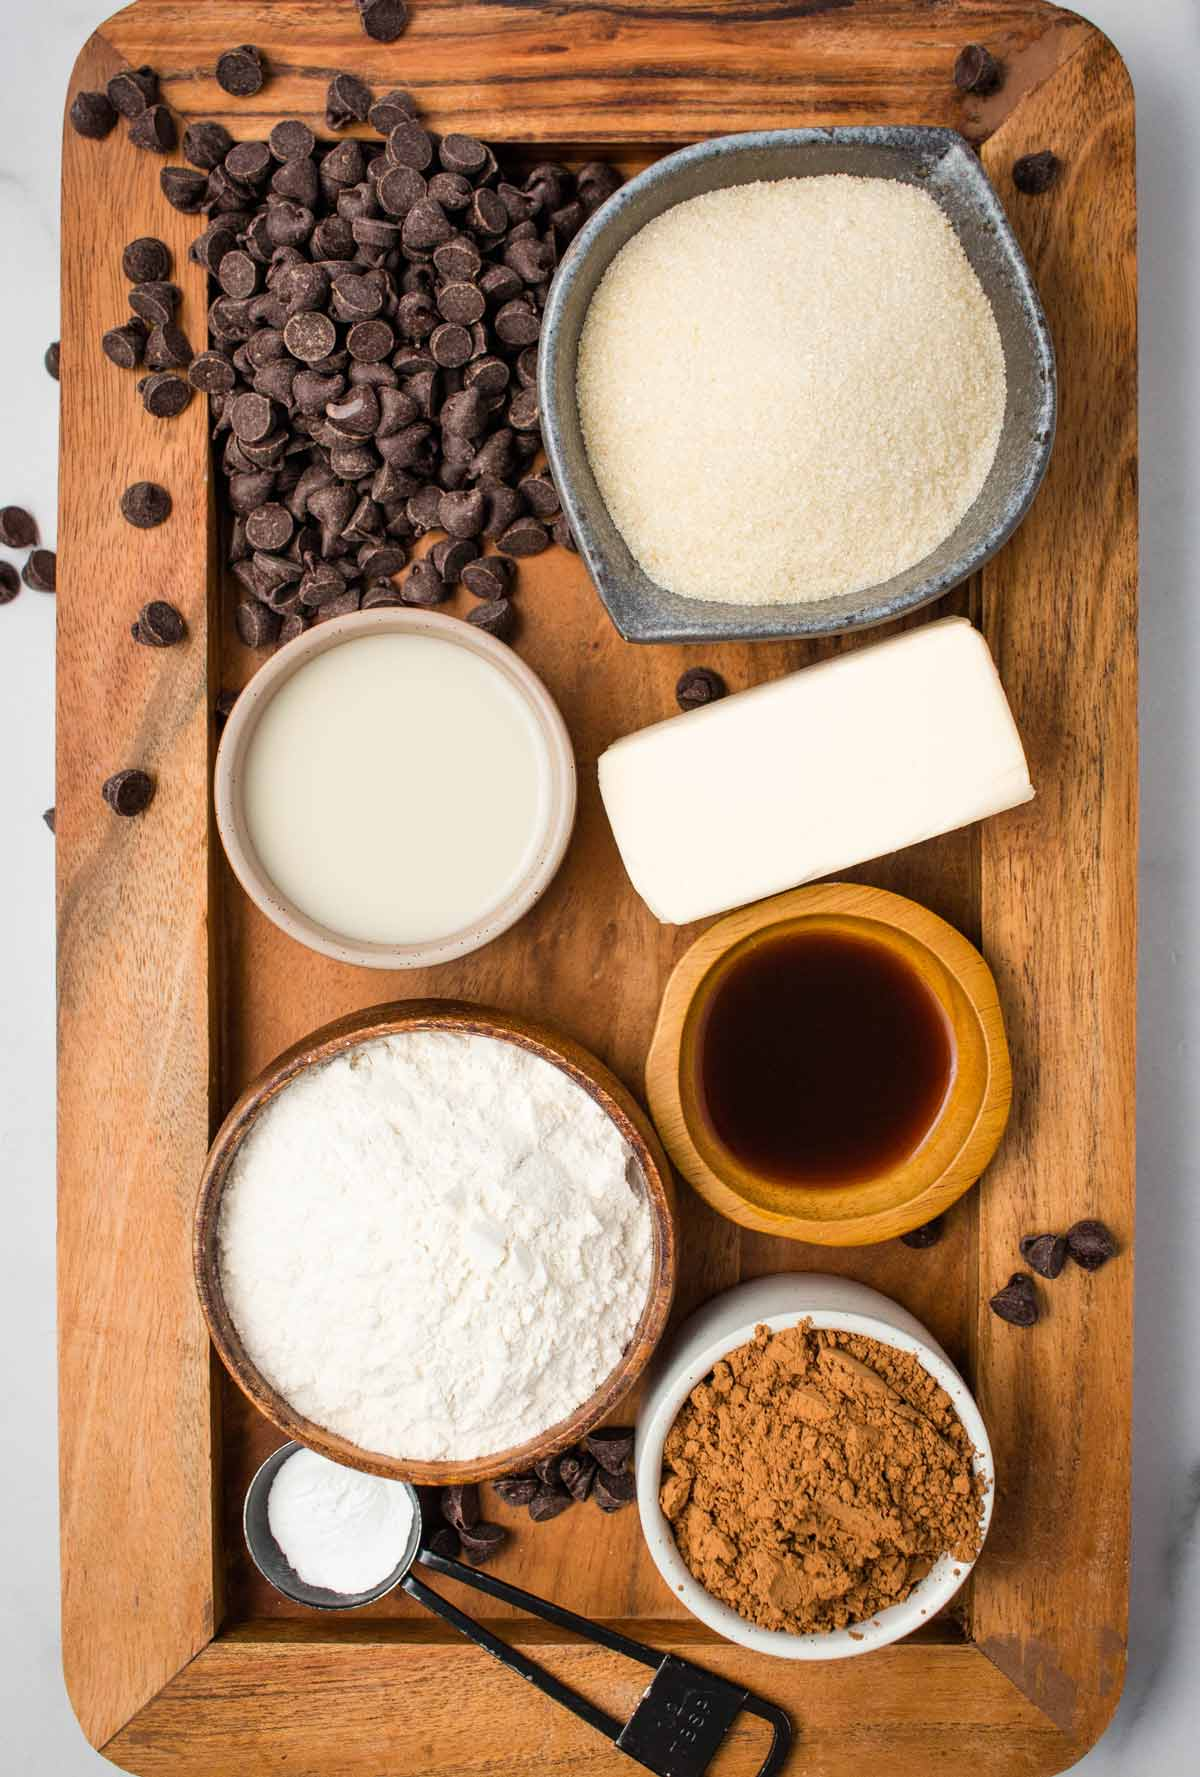 Ingredients on a wooden tray: non-dairy butter, sugar, cocoa powder, flour, vegan chocolate chips, vanilla extract, baking powder and salt.